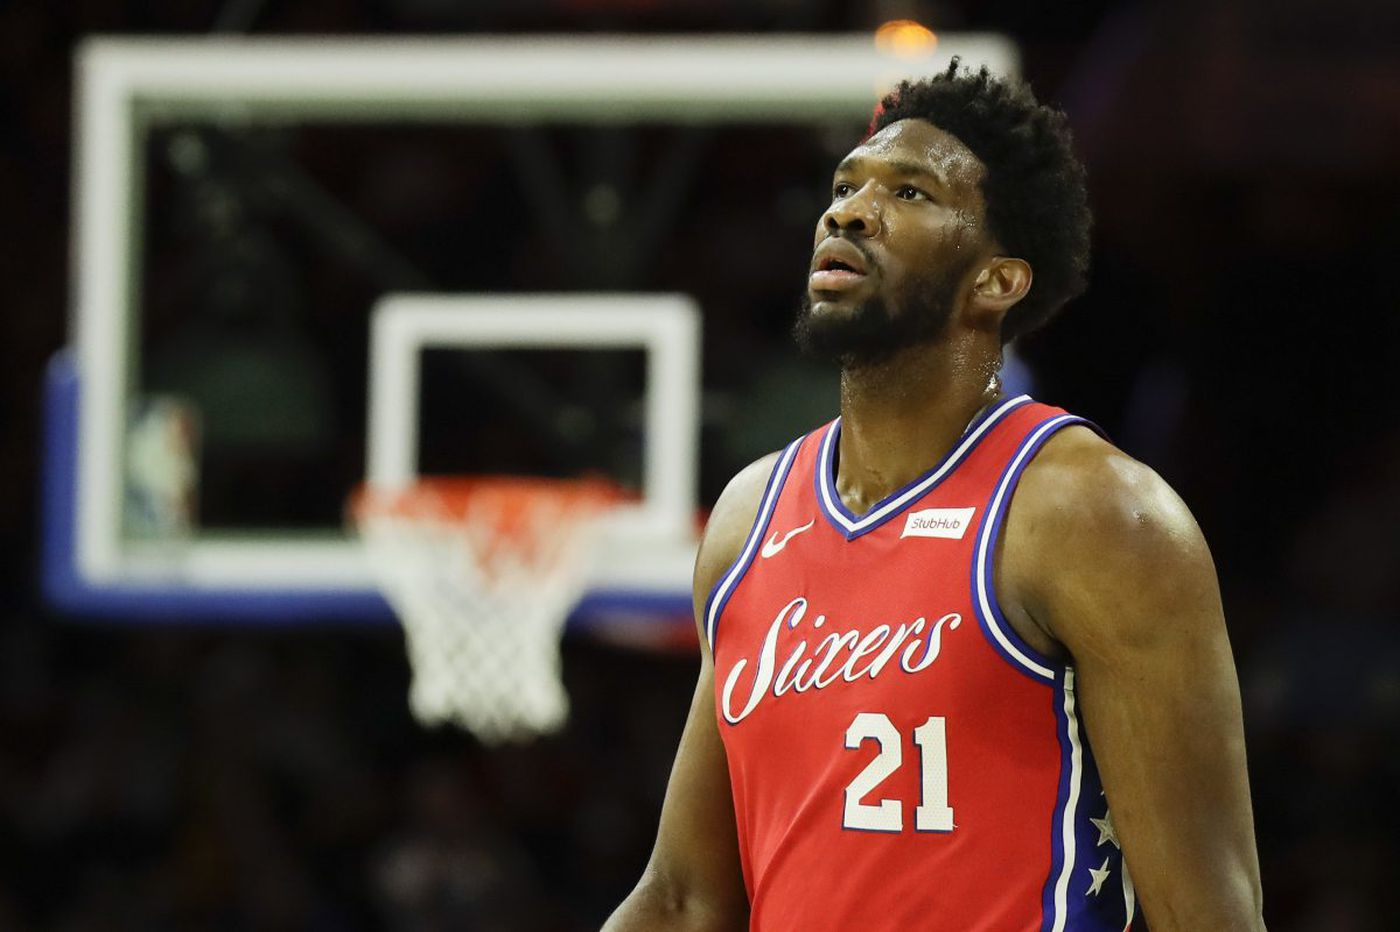 Sixers have one objective in London: Beating the Celtics